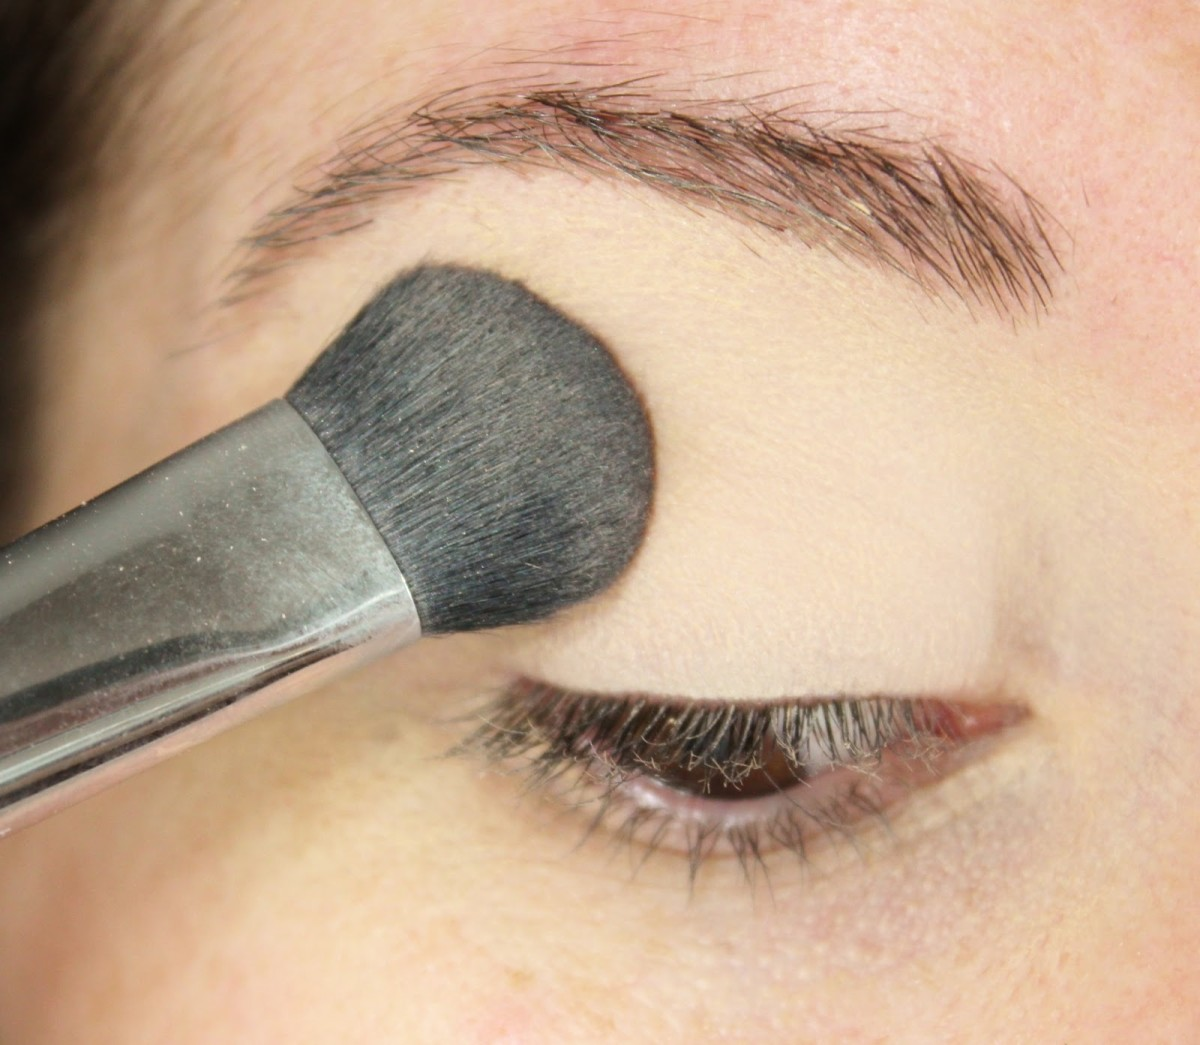 Apply eye shadow primer powder to your eyelid first.